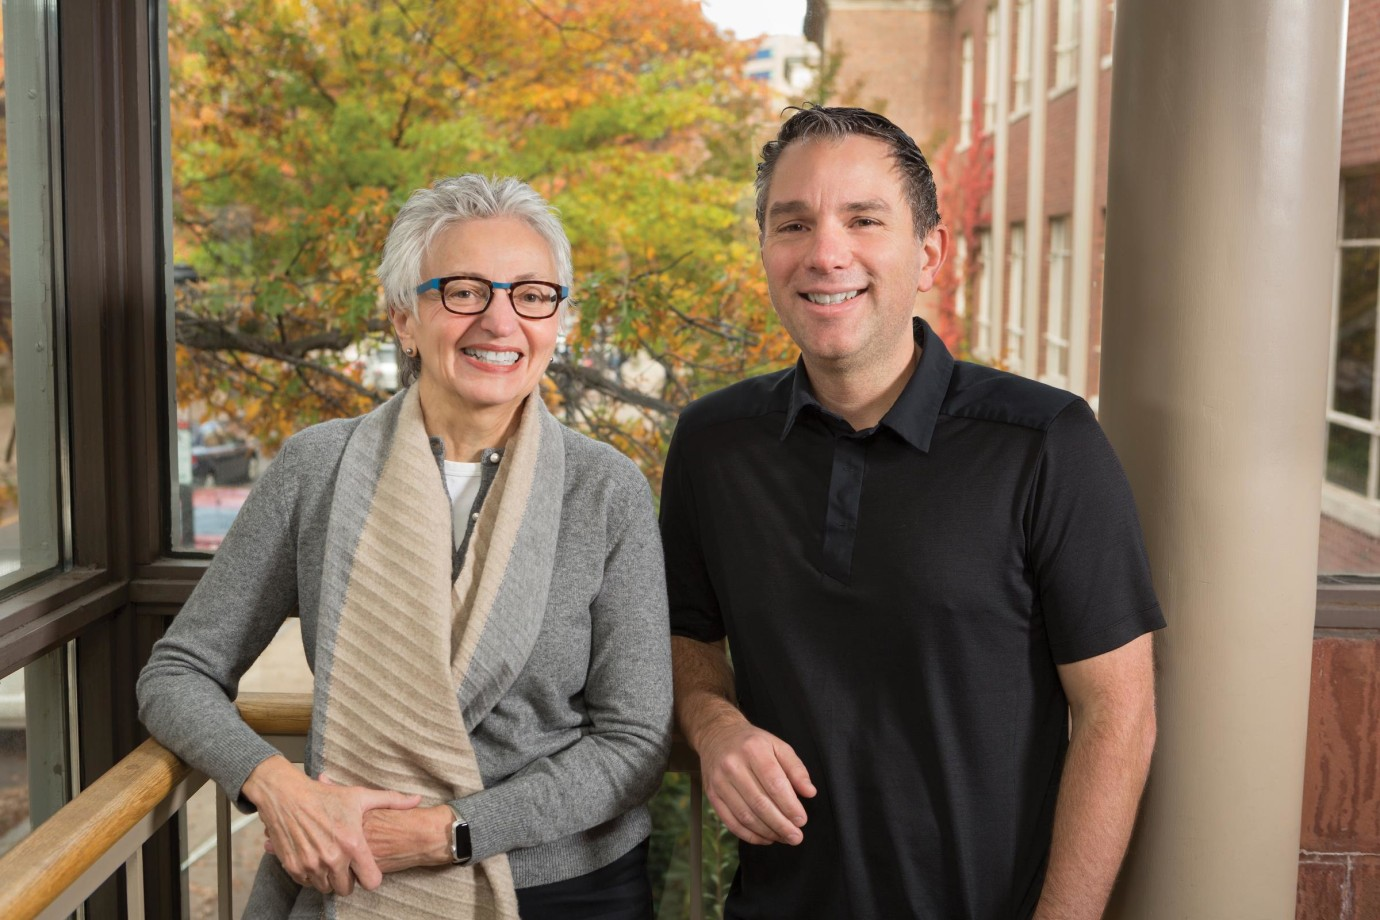 Women's Health Research at Yale, led since its founding by Carolyn Mazure (left), is a leader in building research knowledge of health issues as they relate to women. Ryan Jensen is investigating gene mutations' varied effects on breast cancer.